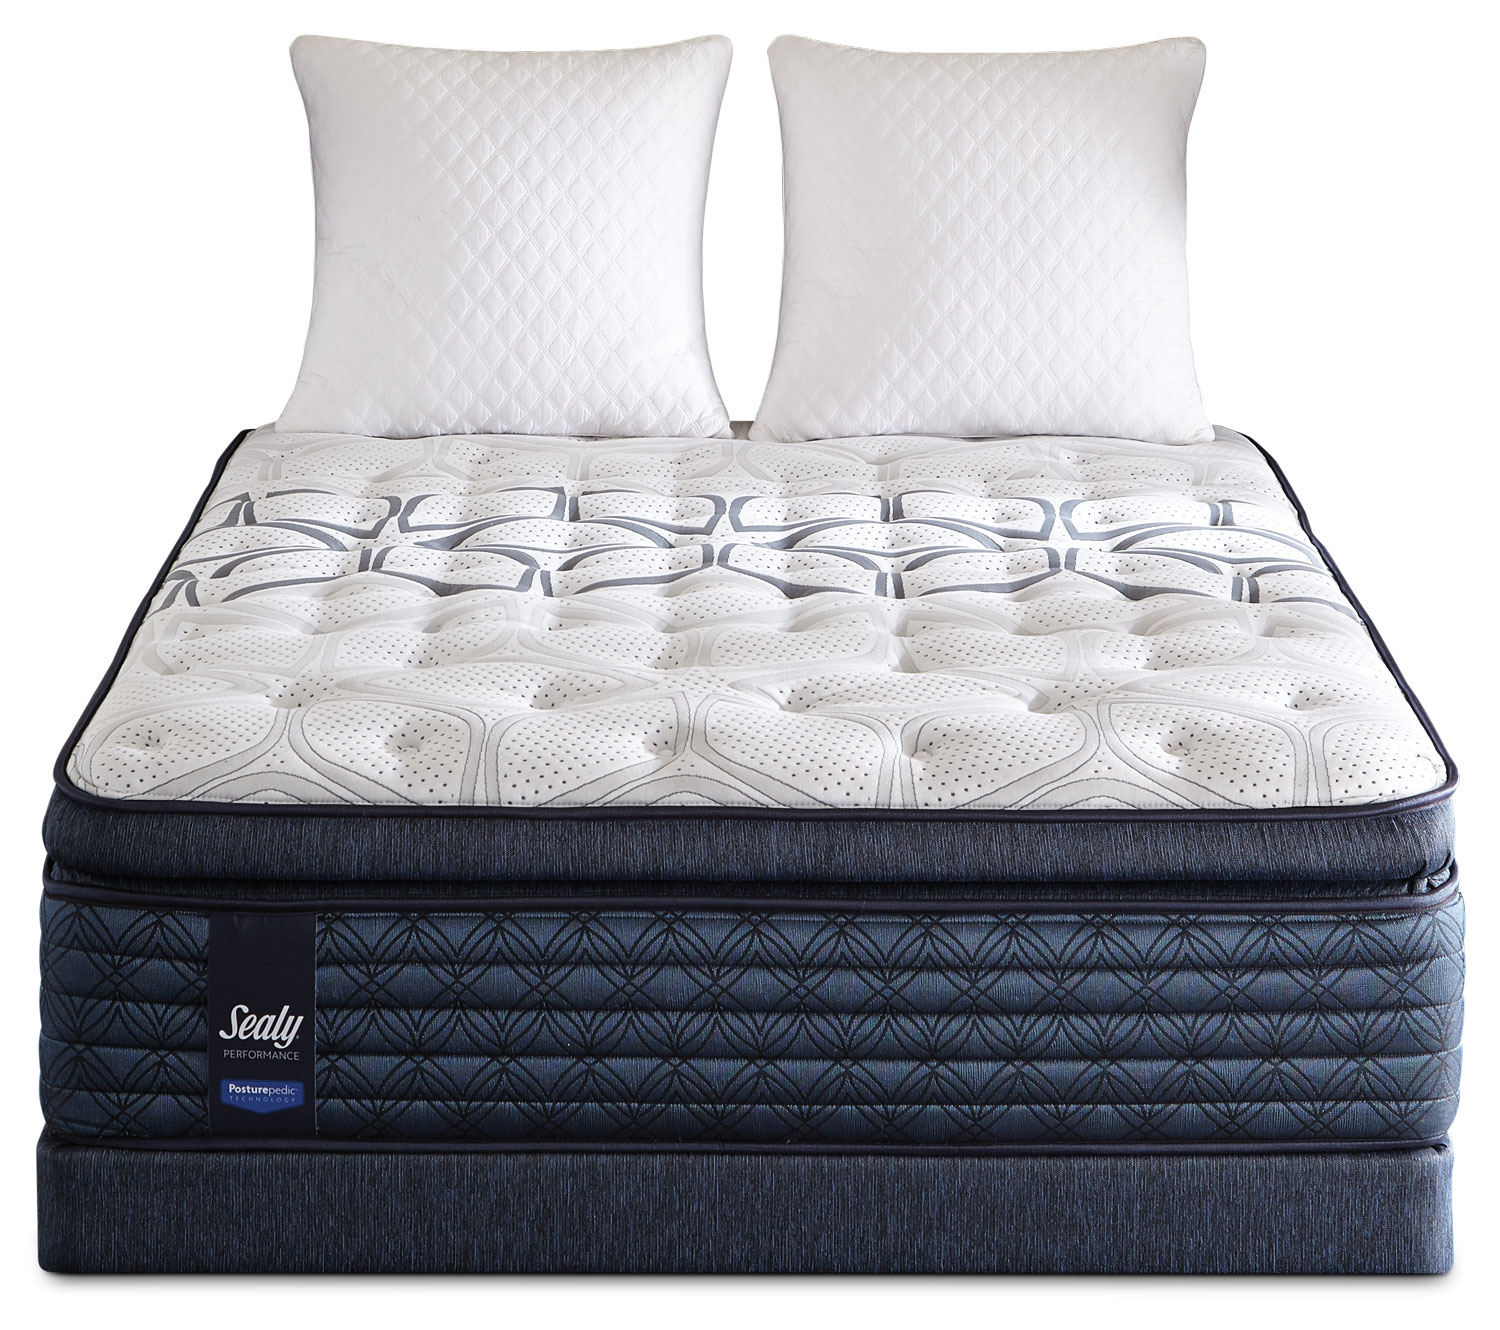 Sealy ProBack Cantania Euro Pillow-Top Plush Low-Profile Split Queen  Mattress Set